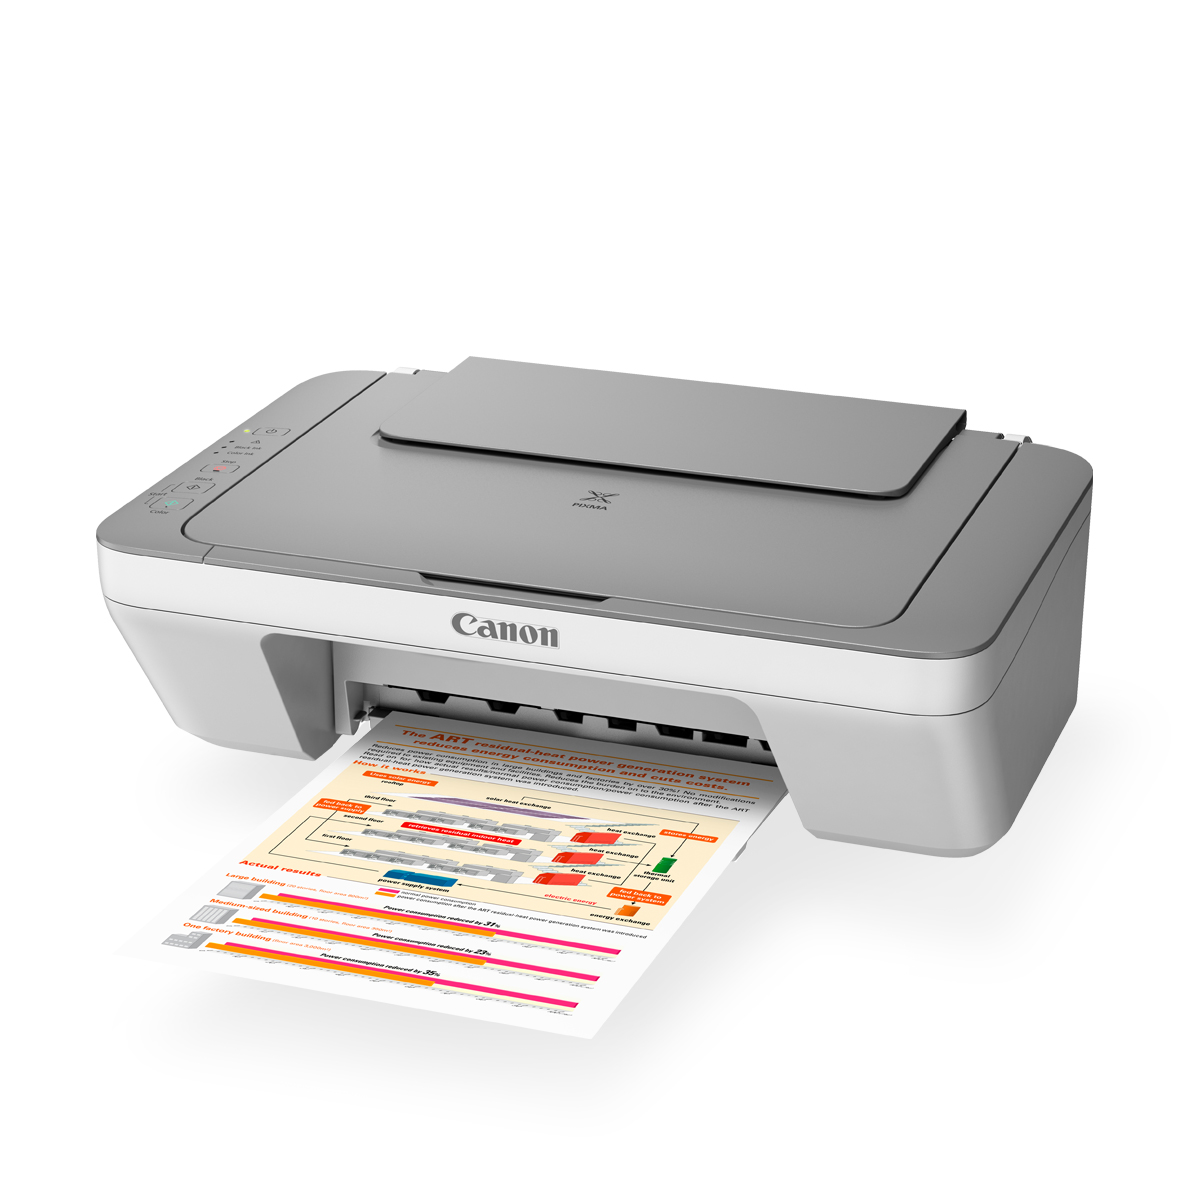 white PIXMA printer open with paper coming out